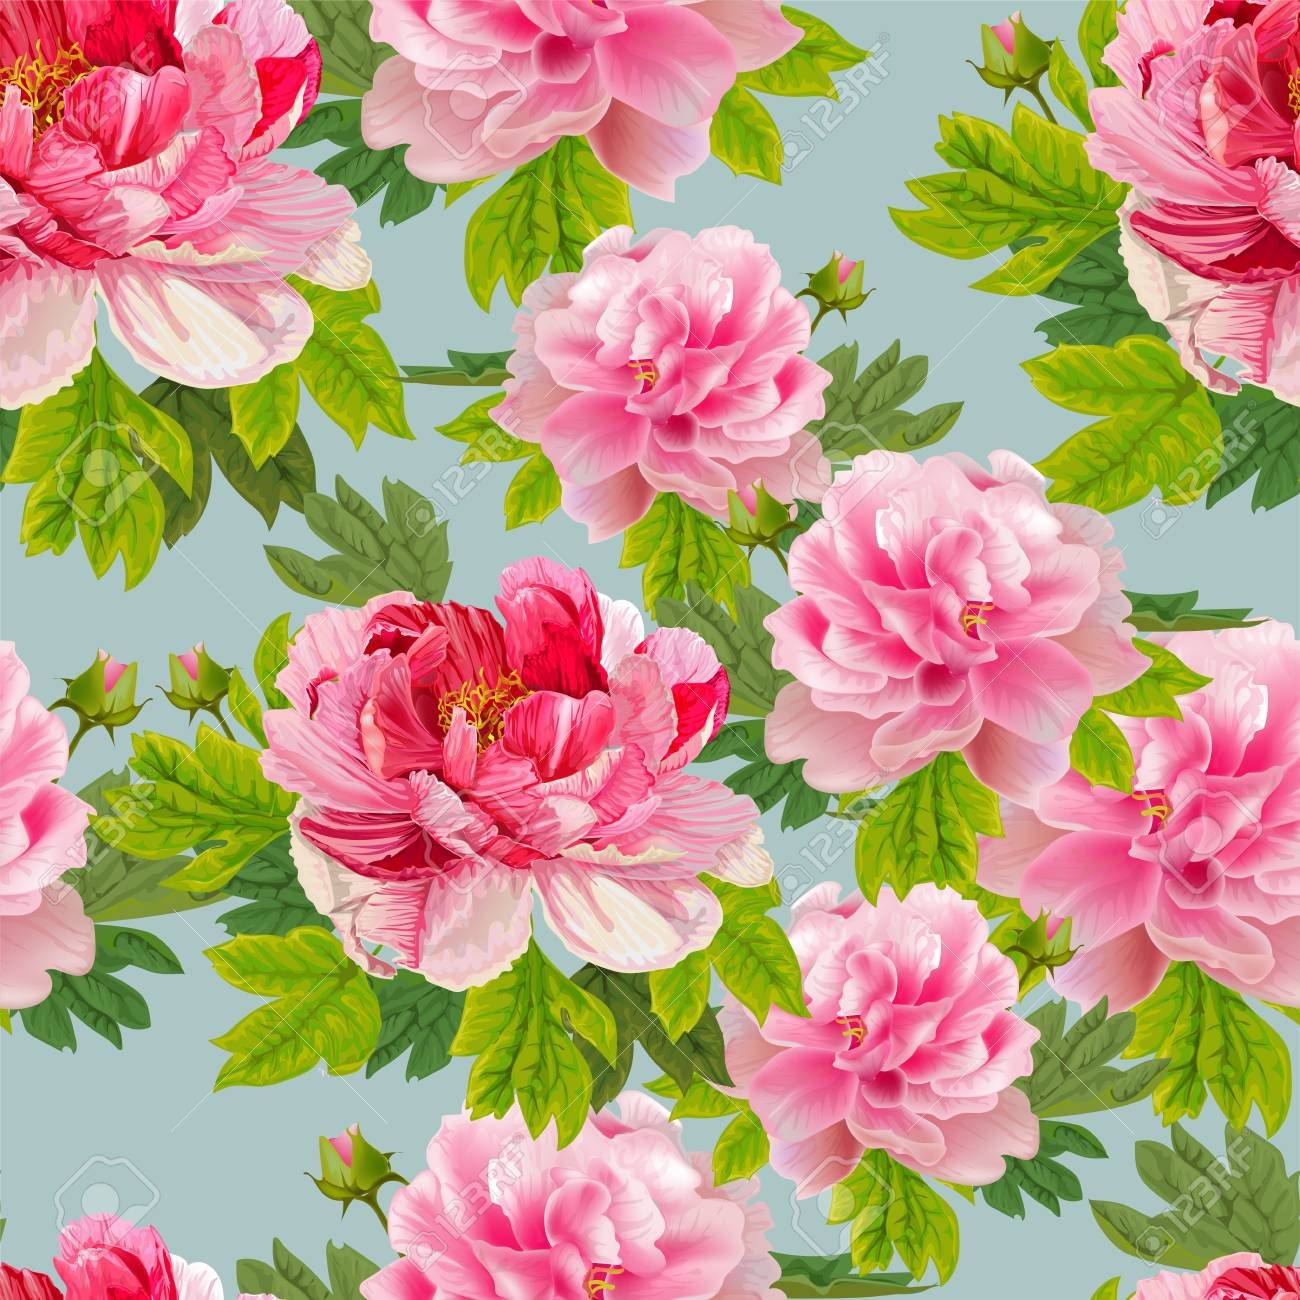 Peonies And Leaves On The Light Blue Background Romantic Garden